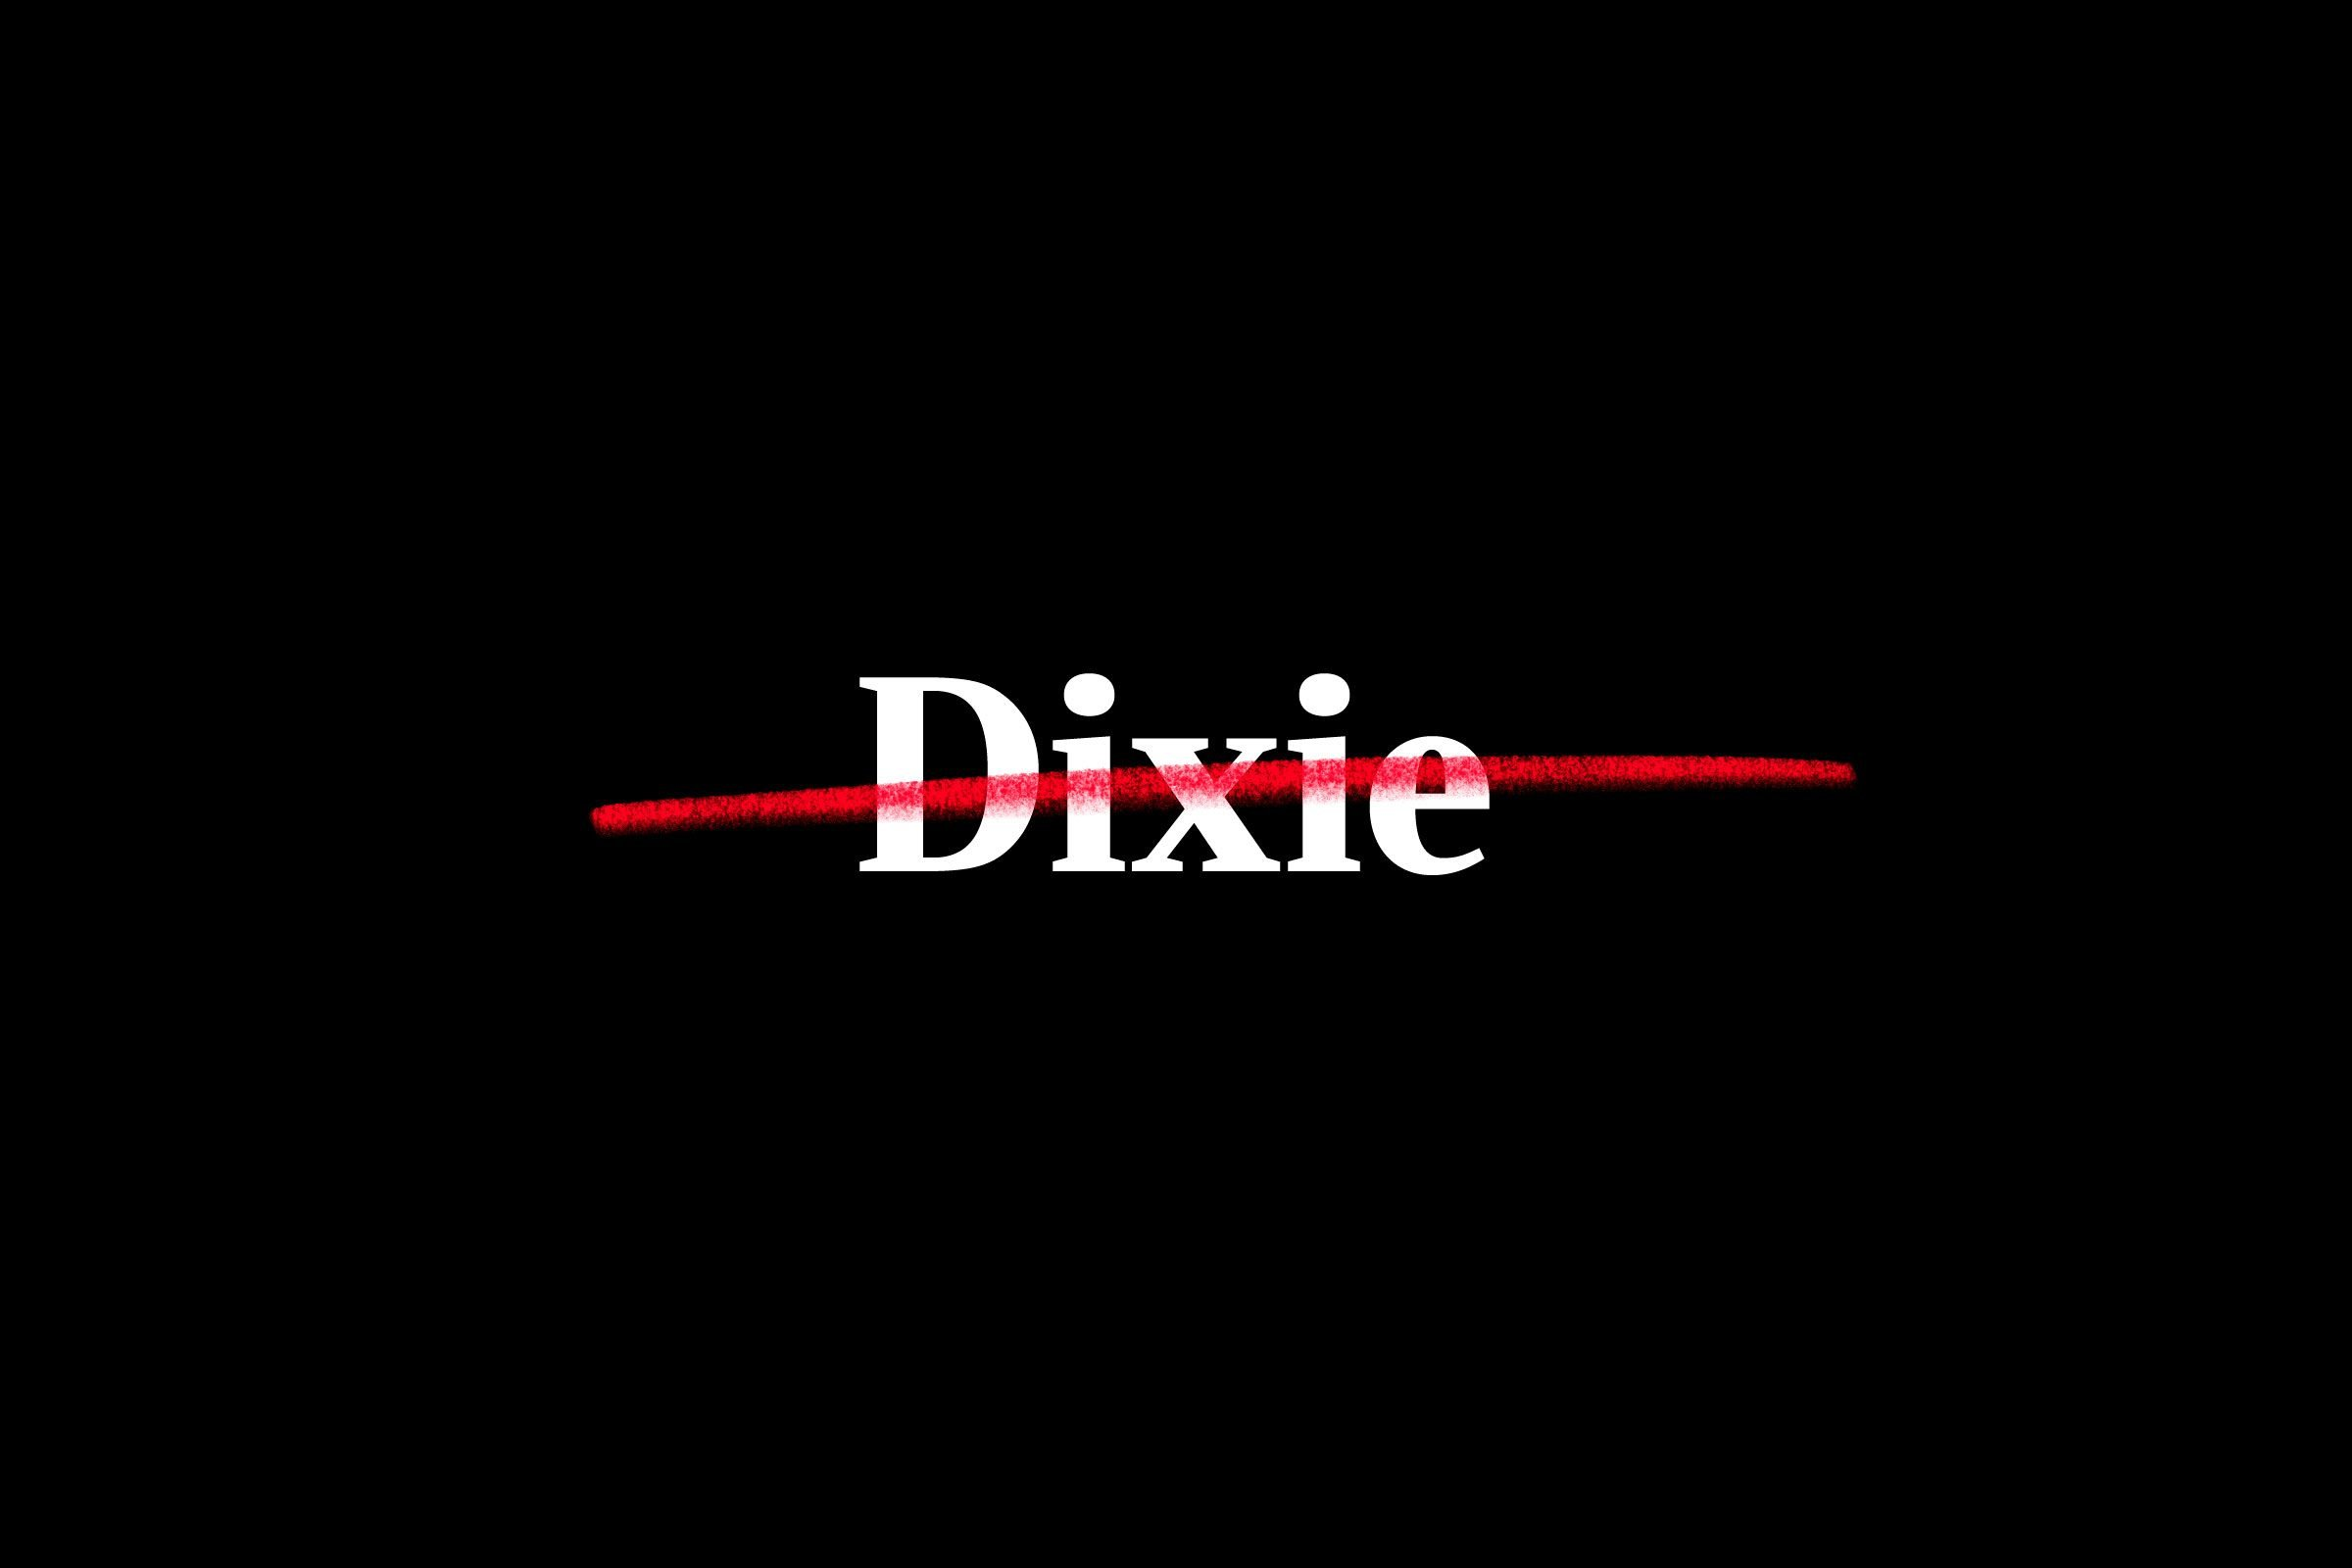 """dixie"" crossed out"